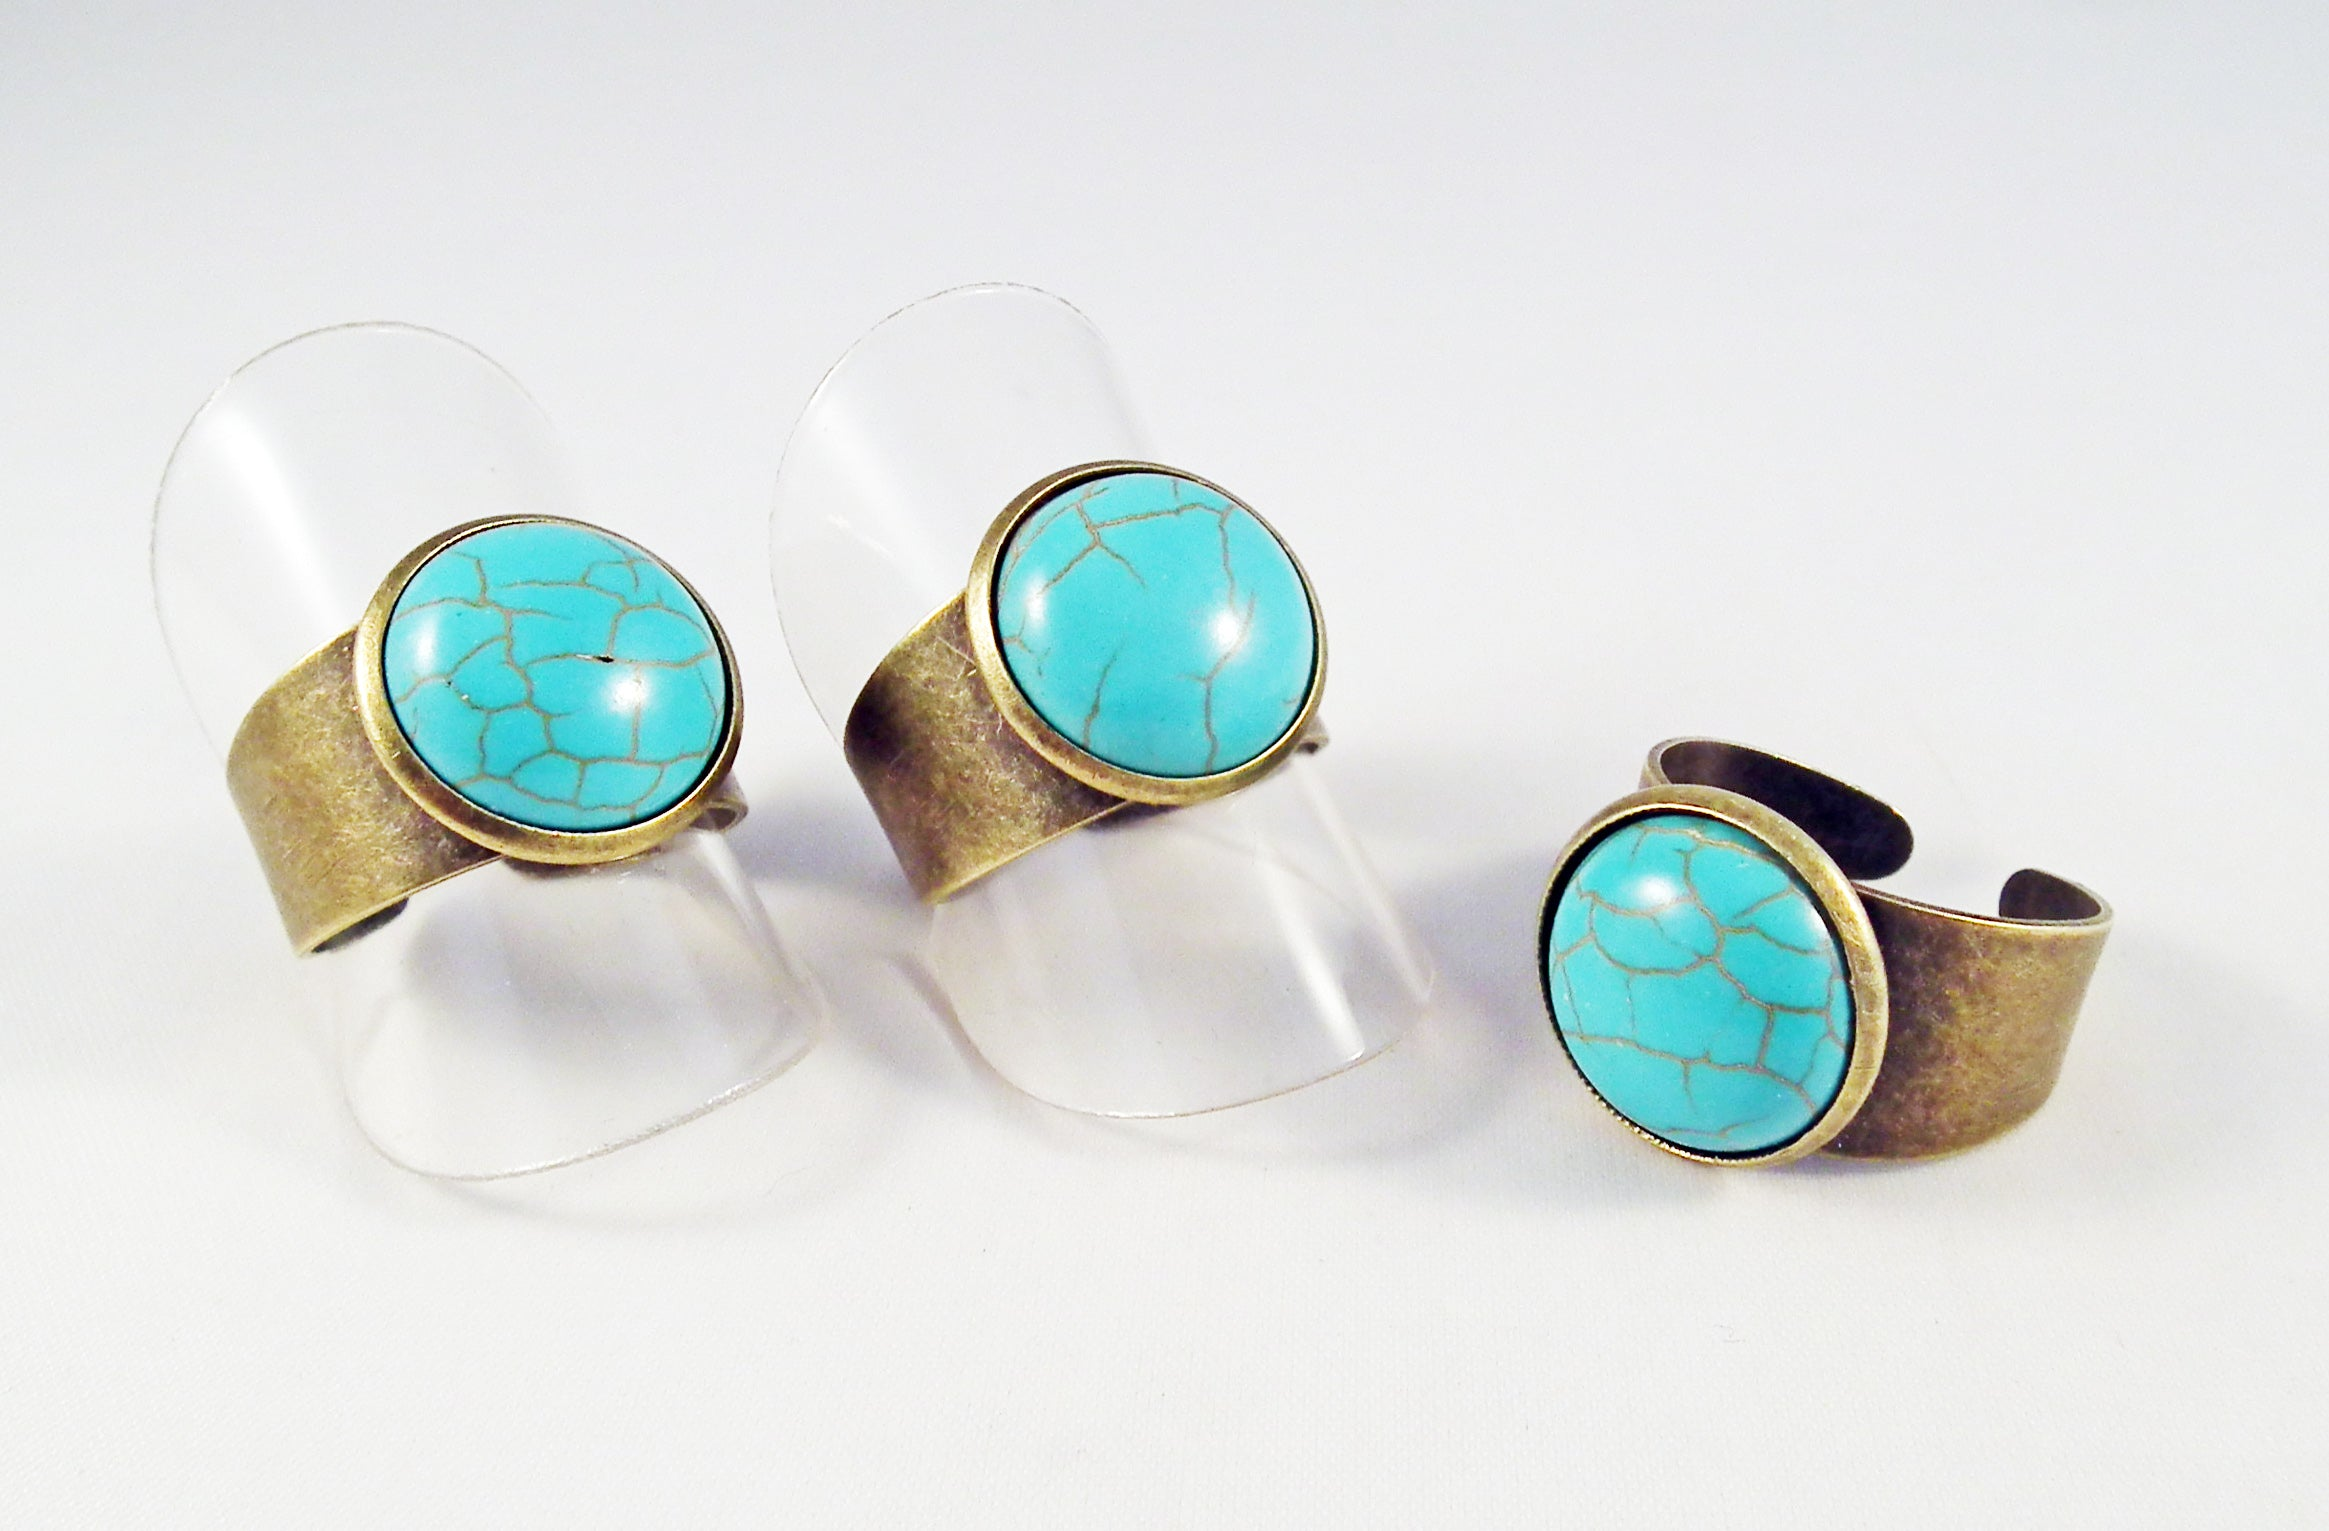 rose silver turquoise rock tilda rings products ring sterling n